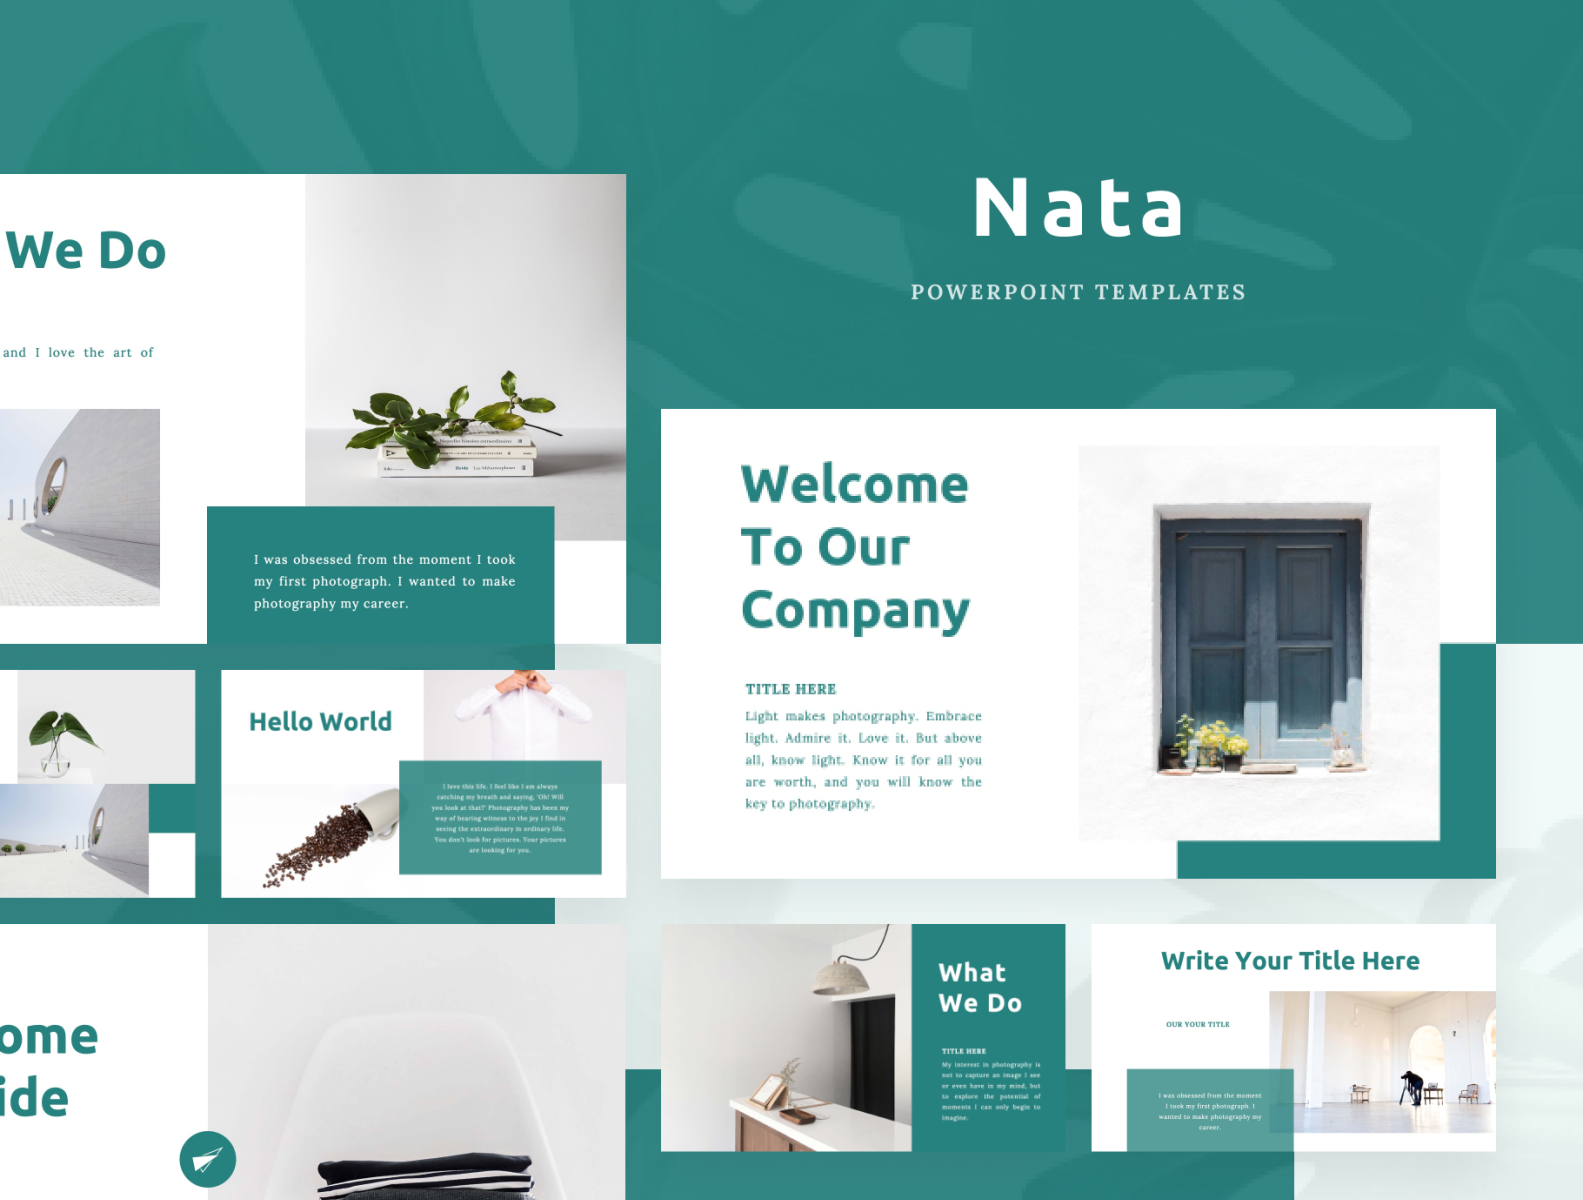 Nata Powerpoint Template By Uiplus On Dribbble